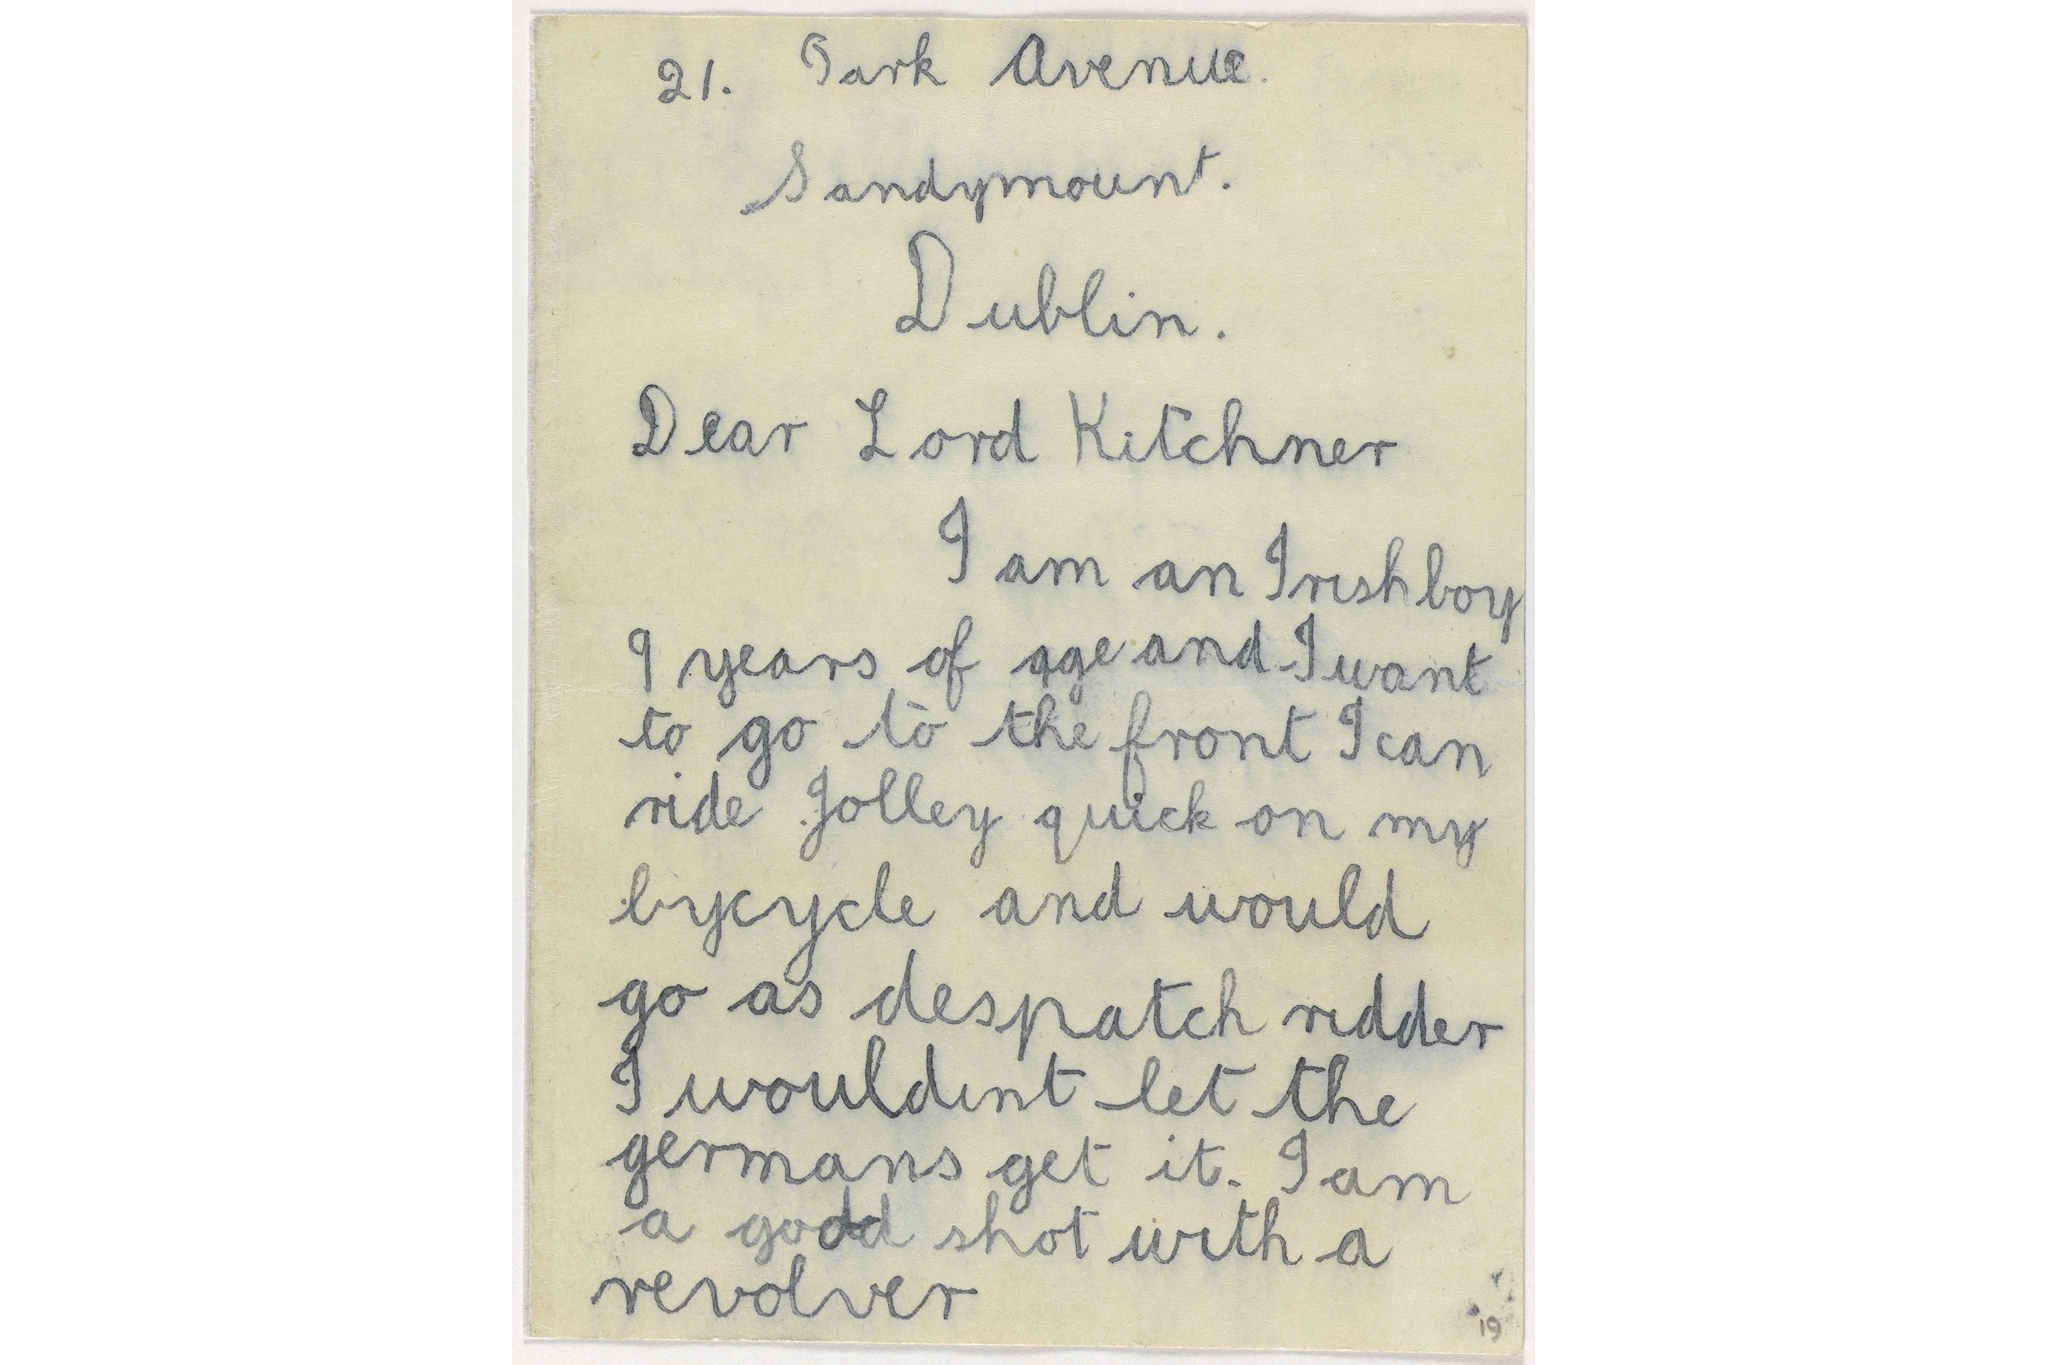 Letter to Lord Kitchener from the Imperial War Museum